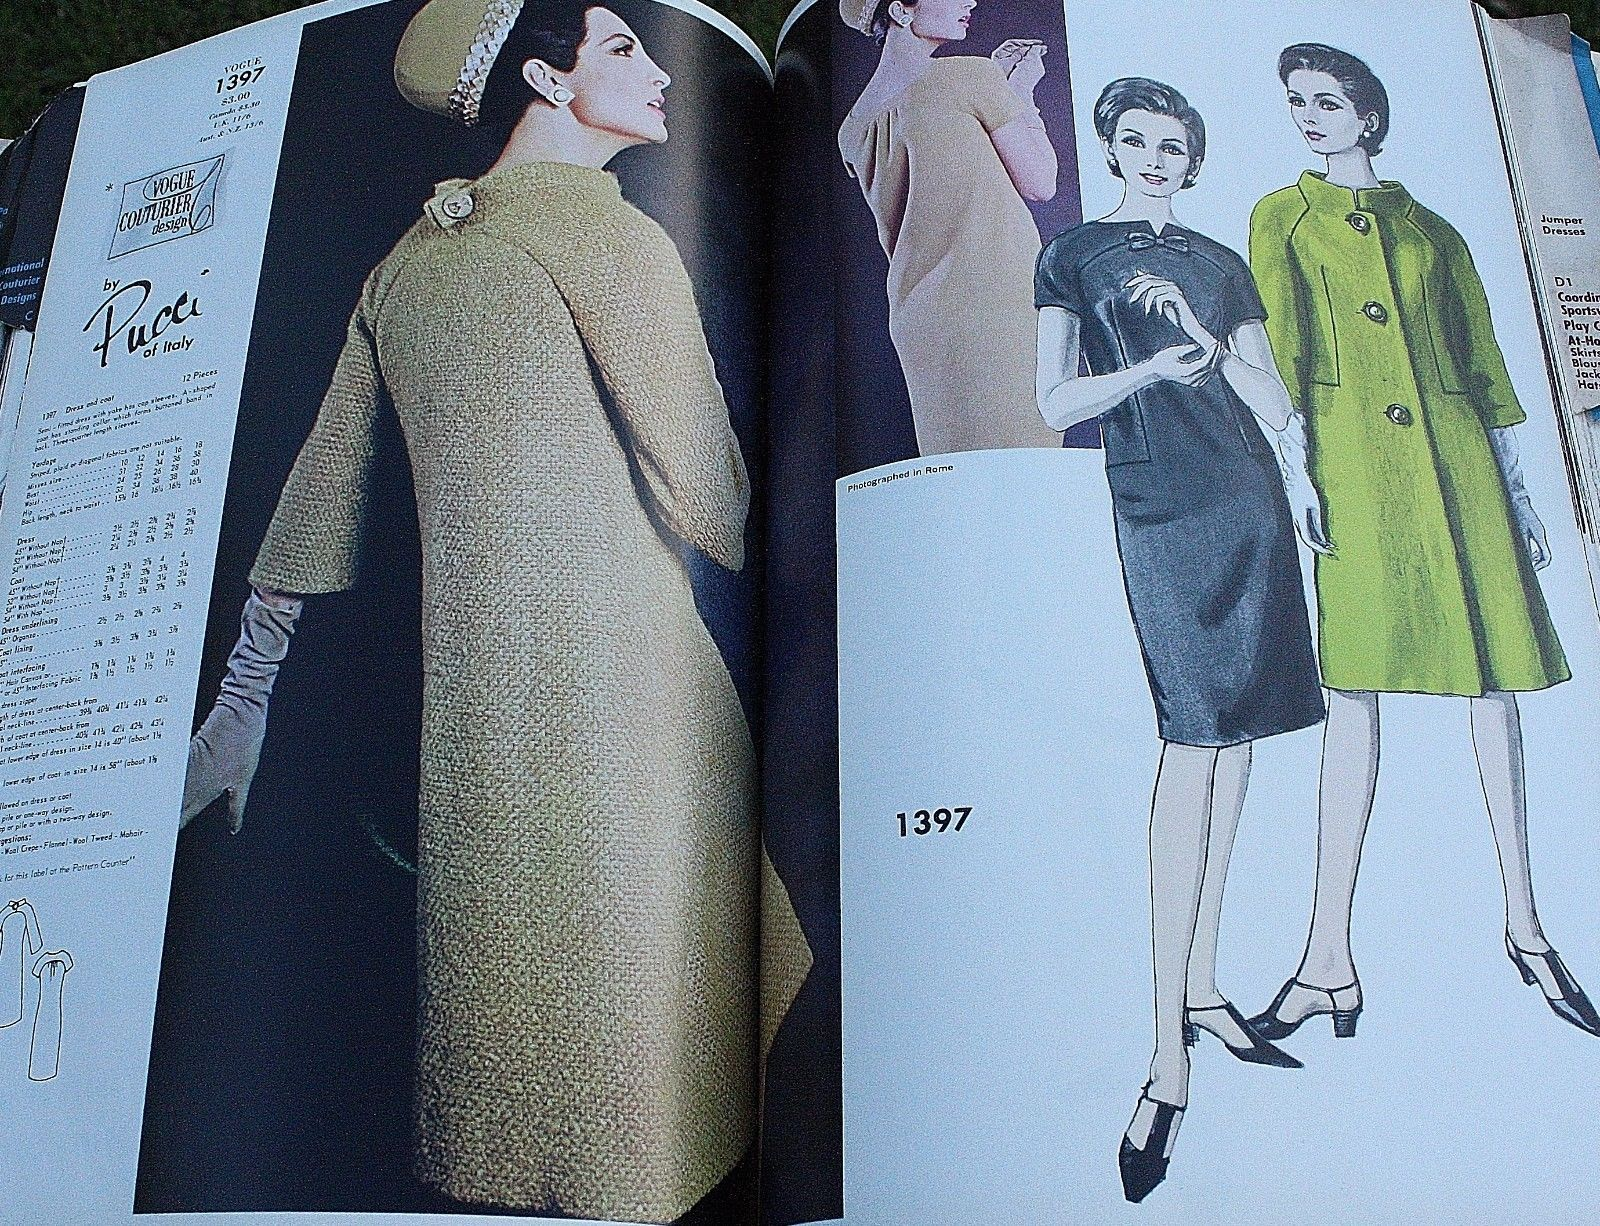 Vogue 1397 by Pucci, March 1965 retail catalogue